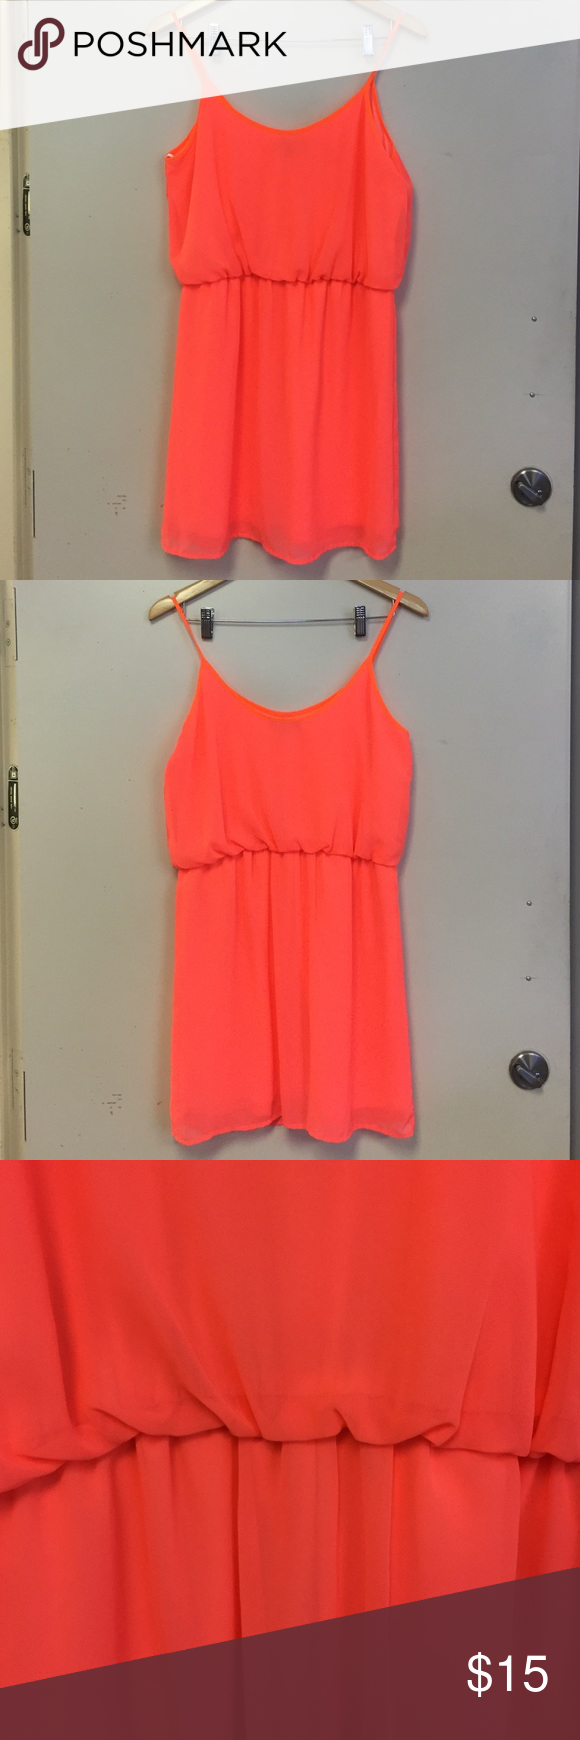 Bright Orange Dress Bright orange dress perfect for a summer wedding. Worn once and makes your tan look amazing. Size large. City Triangles Dresses Mini